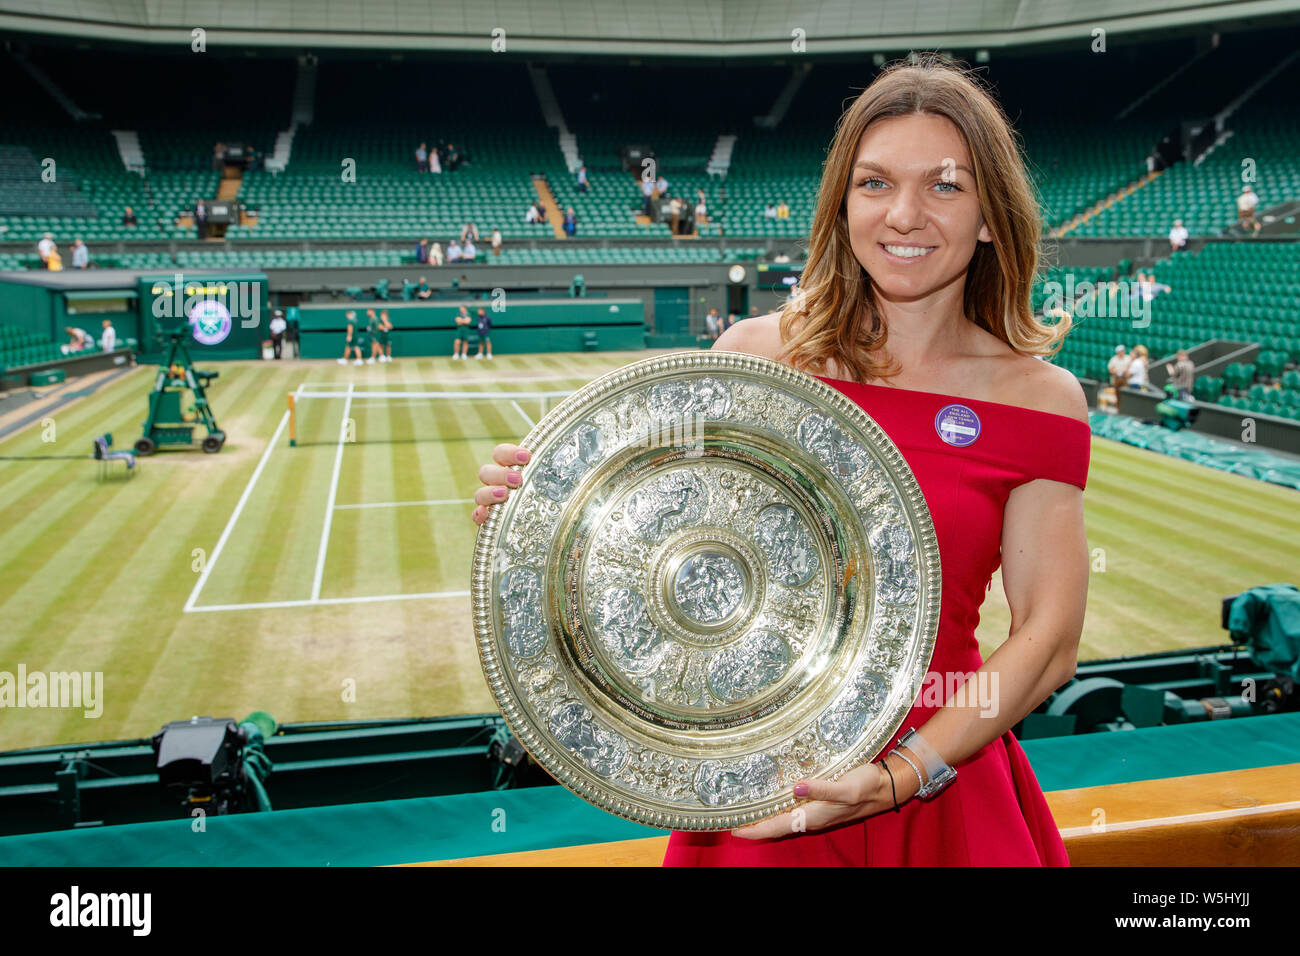 Simona Halep (ROU) with the 2019 Wimbledon Ladies' Singles Trophy on Centre Court at The All England Lawn Tennis Club, Wimbledon. Stock Photo